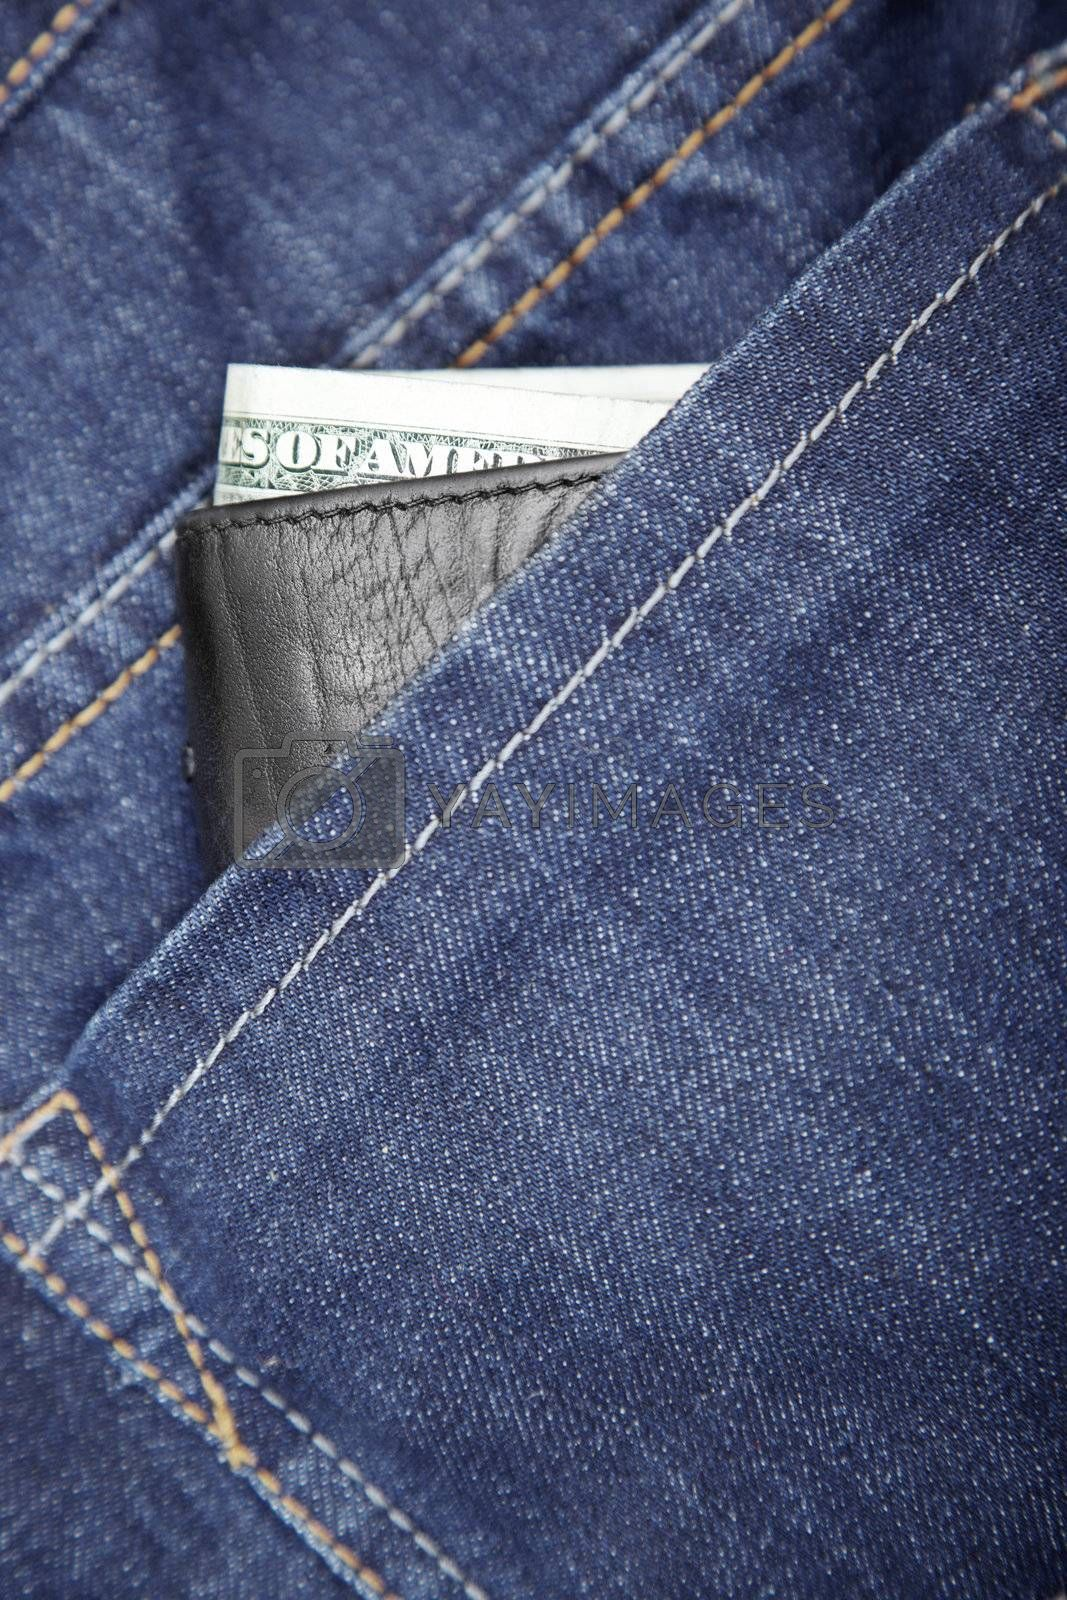 Wallet with dollars in the jeans pocket. Close-up photo